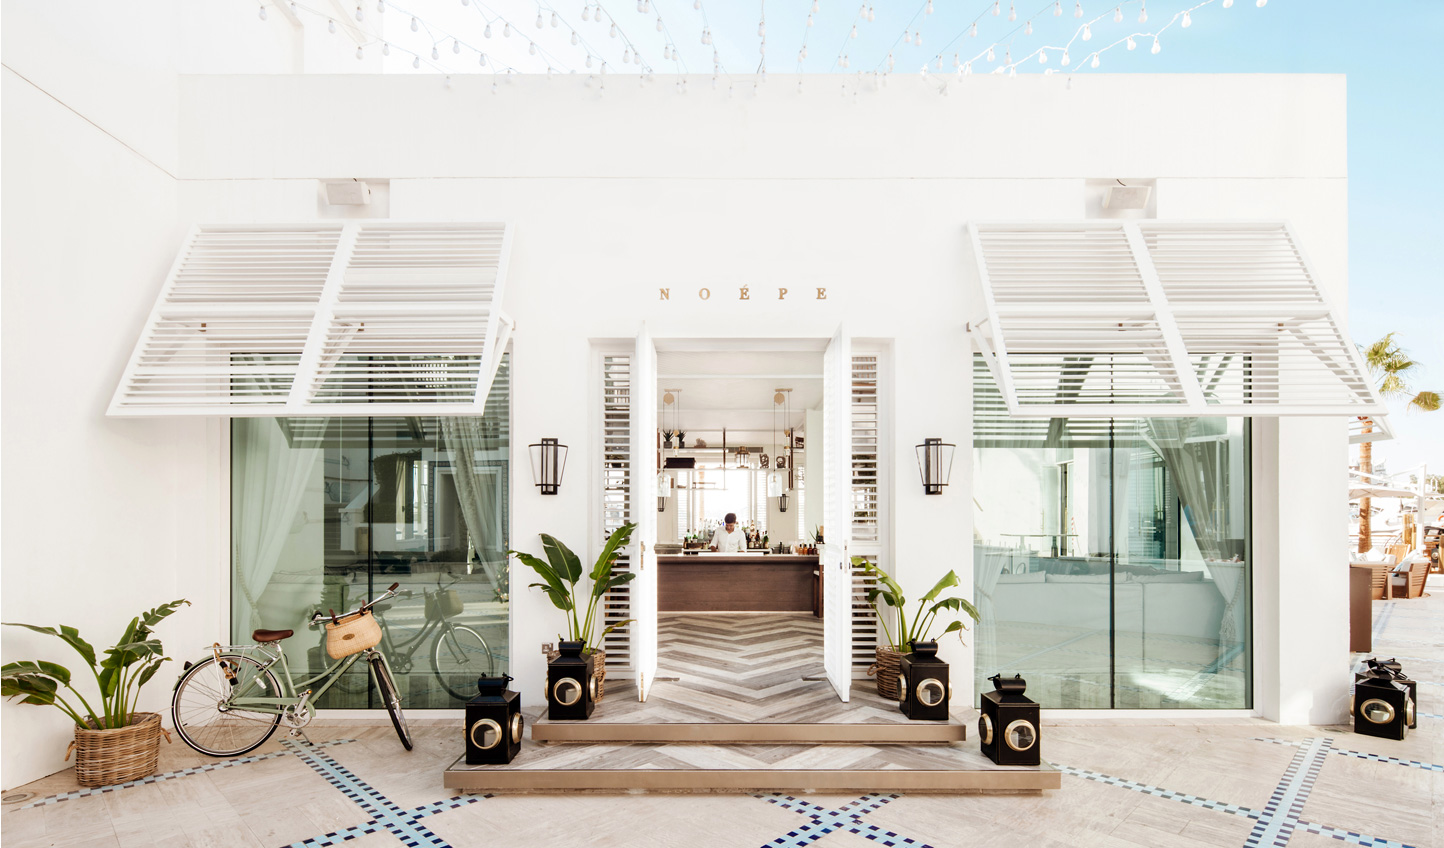 For long lazy lunches and afternoons in the sun, Park Hyatt Dubai's Noepe has the answer